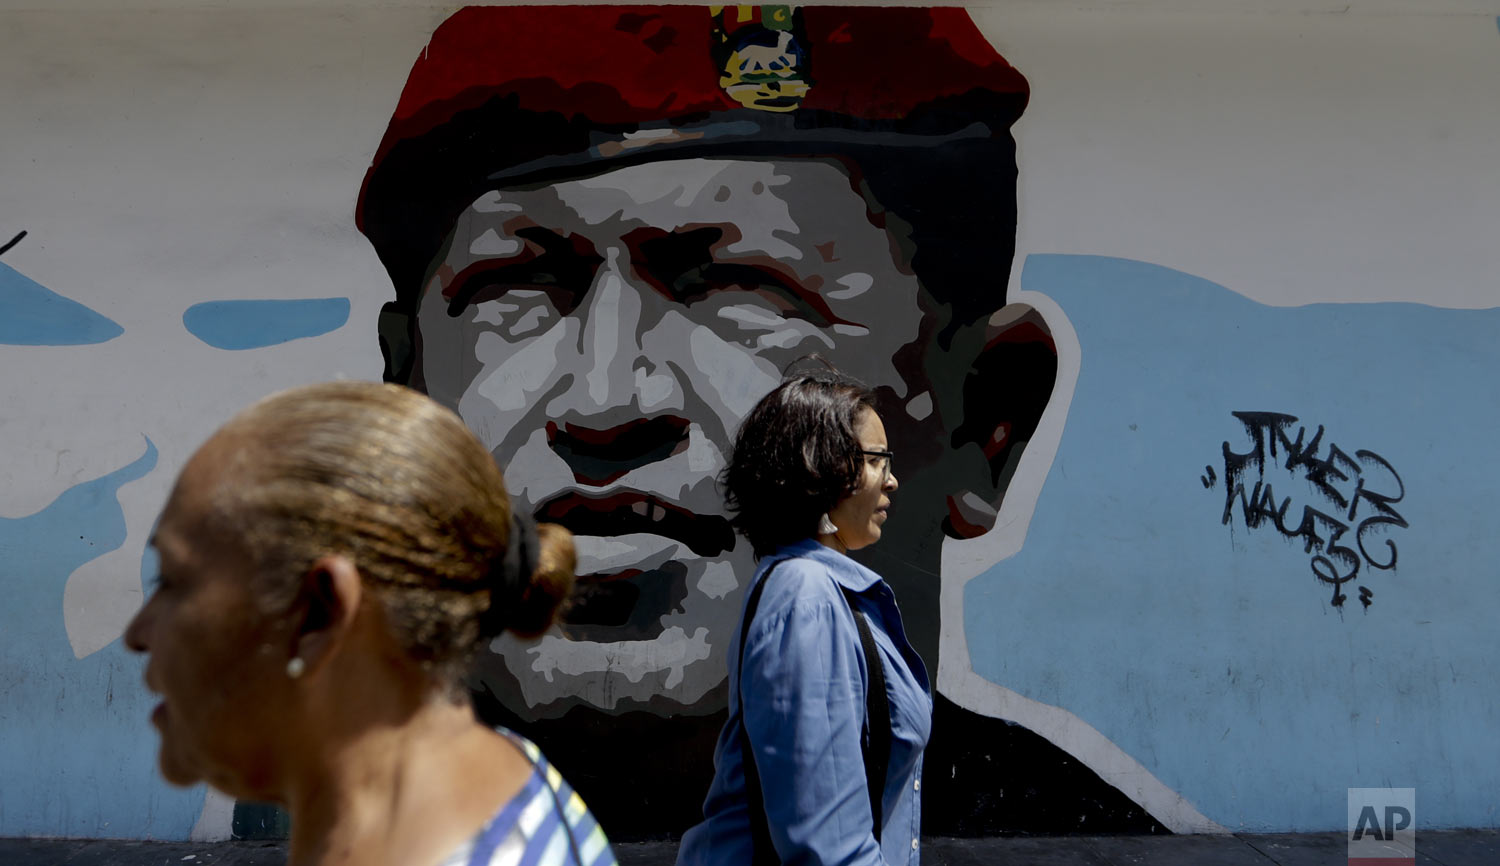 "Pedestrians walk past a mural featuring Venezuela's late President Hugo Chavez, in Caracas, Venezuela, Tuesday, March 19, 2019. Chavez, a former military officer, declared a socialist ""revolution"" after coming to power in 1999. He was succeeded after his 2013 death by his protege, Nicolas Maduro. (AP Photo/Natacha Pisarenko)"